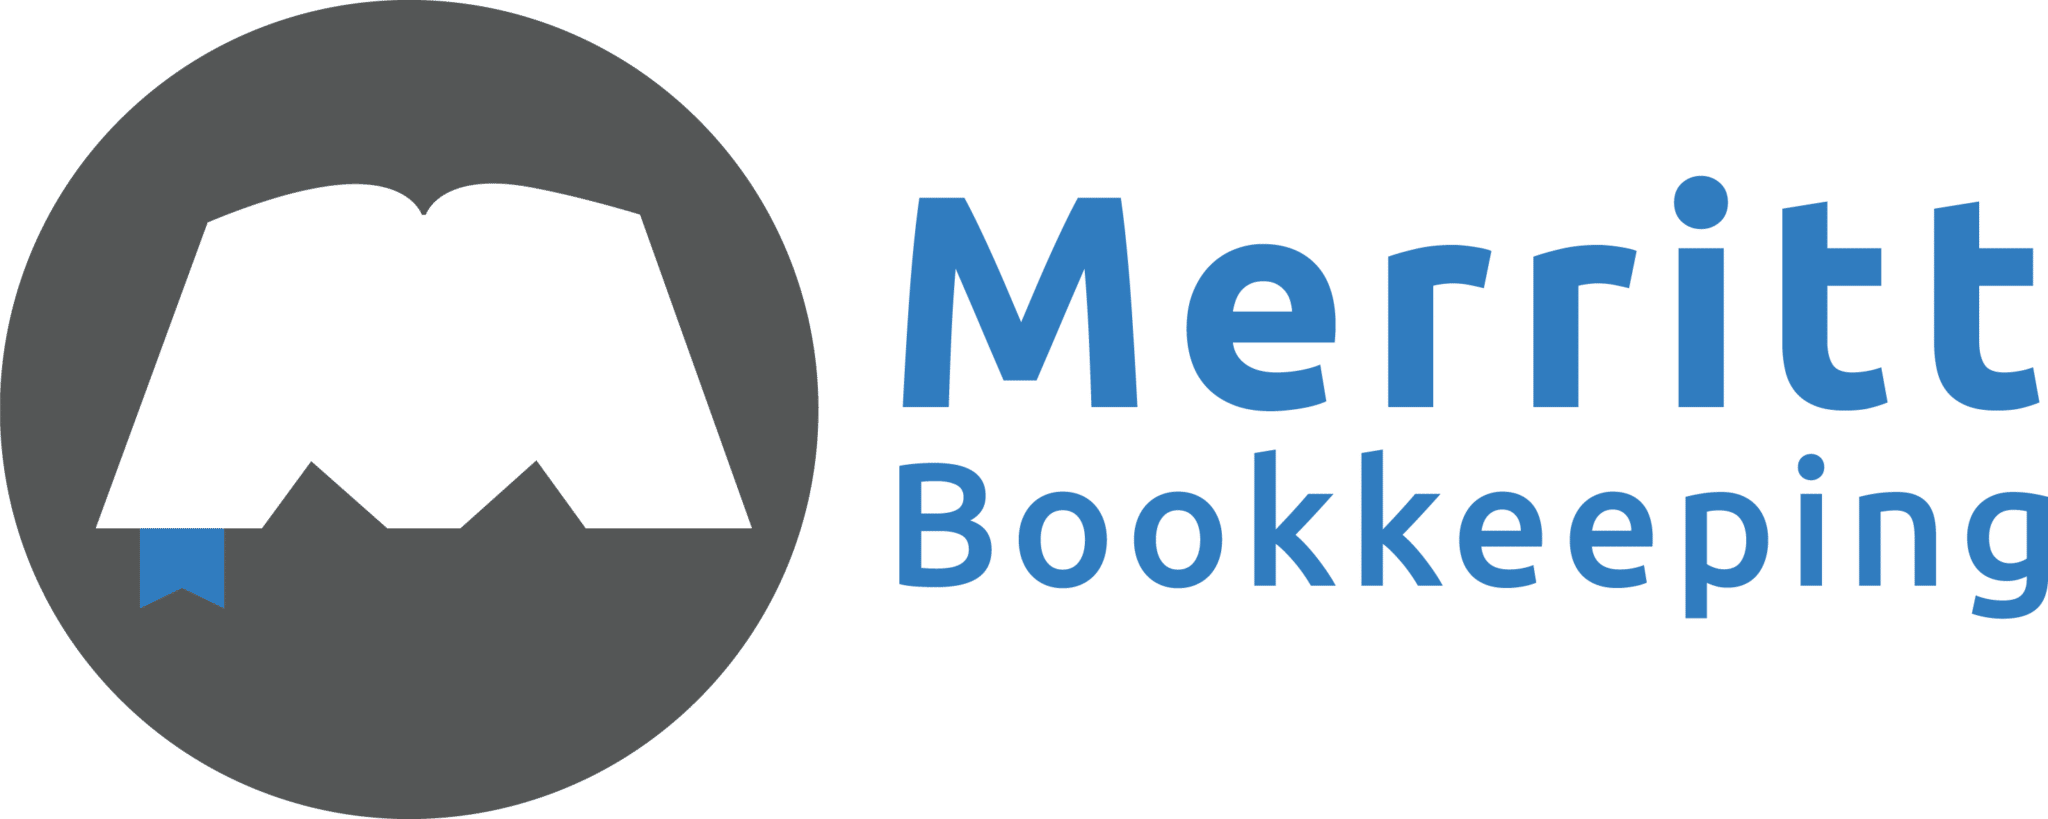 Merritt Bookkeeping Review - 2019